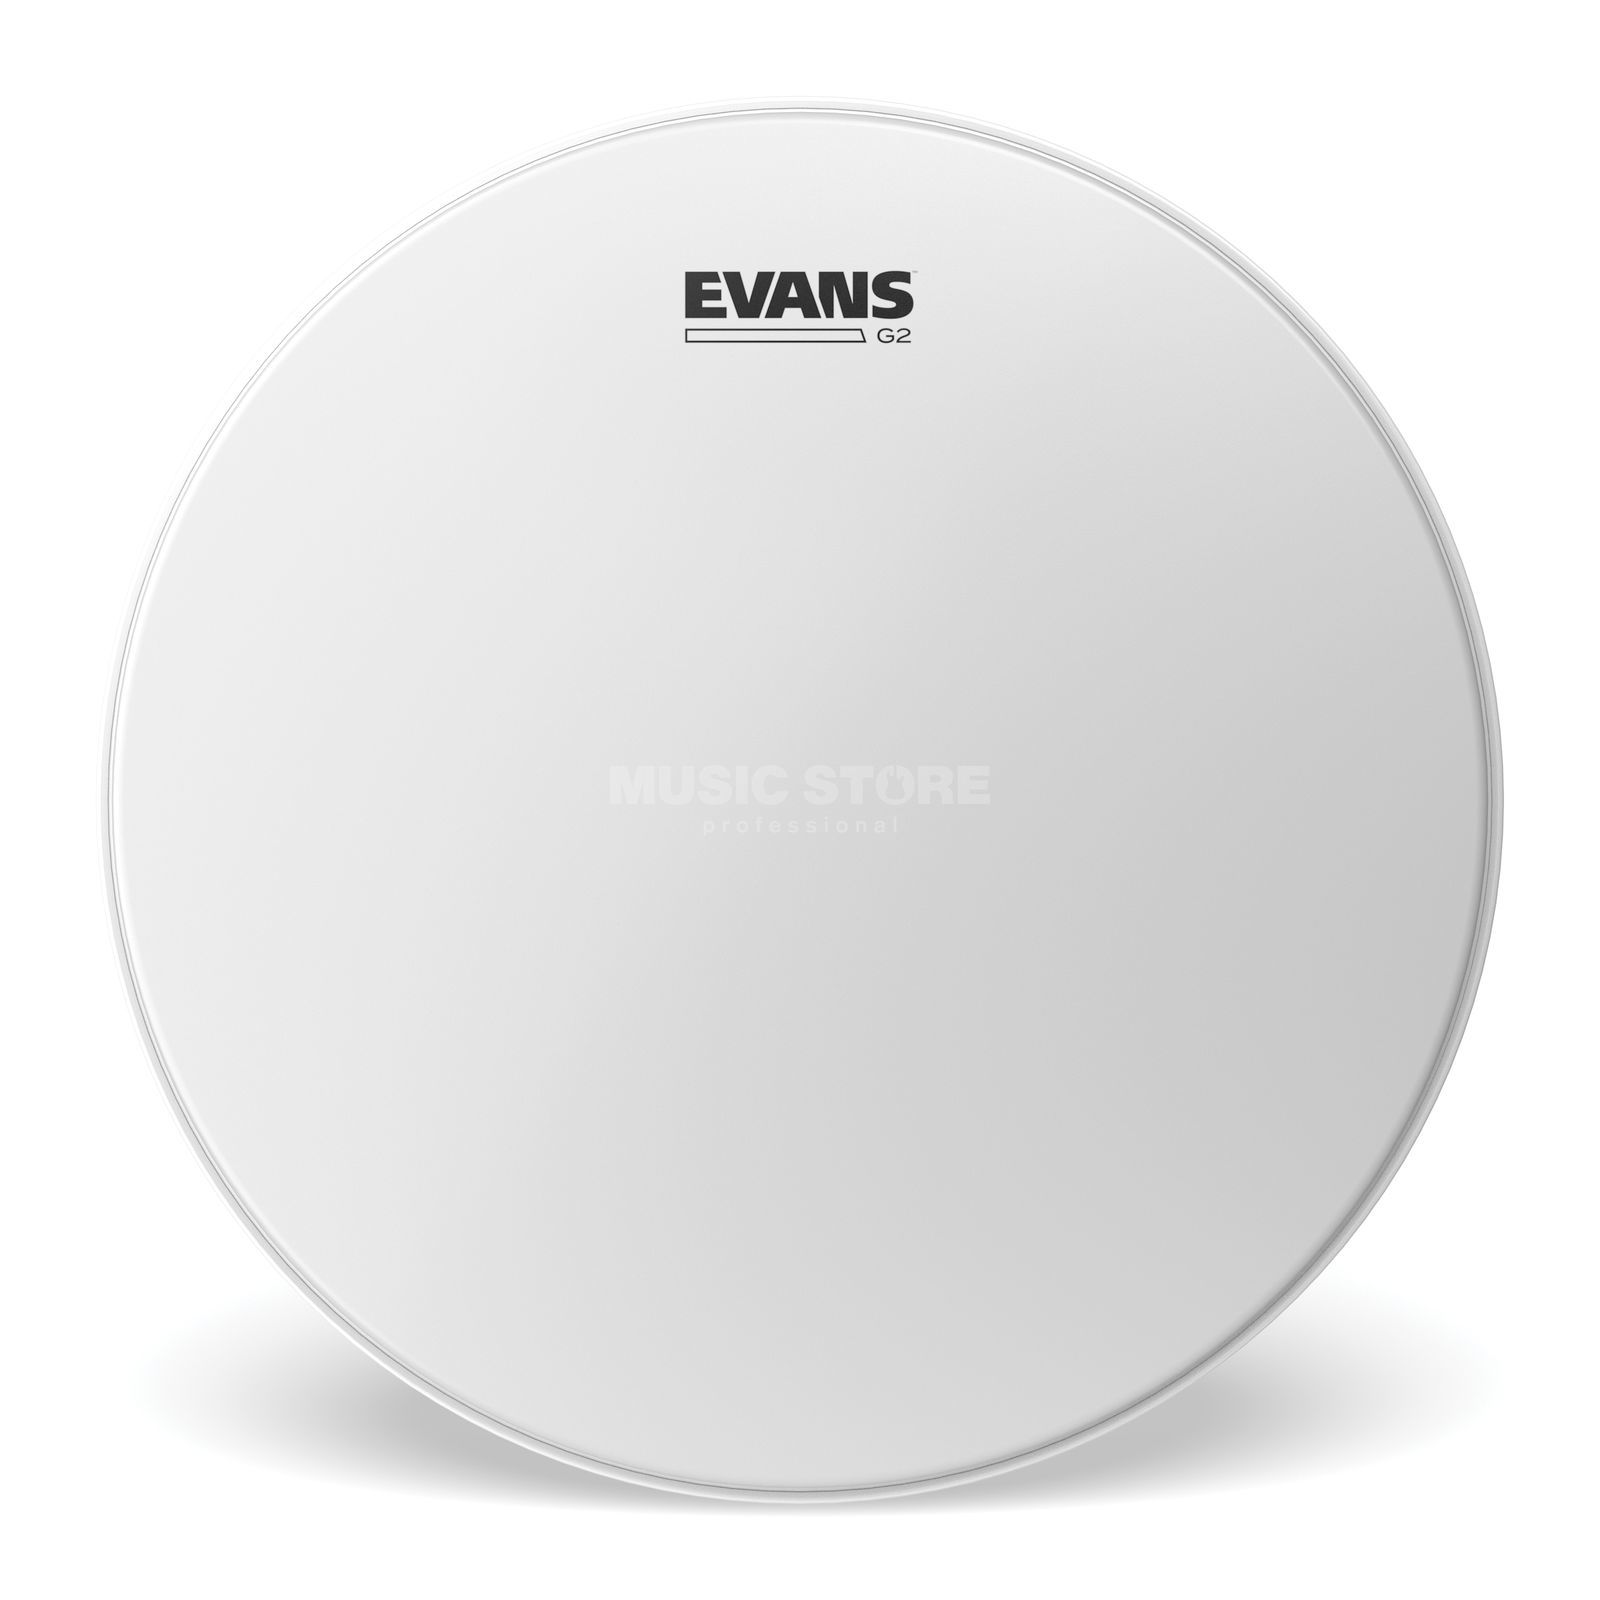 "Evans G2 Coated 15"", B15G2, Tom Batter Produktbillede"